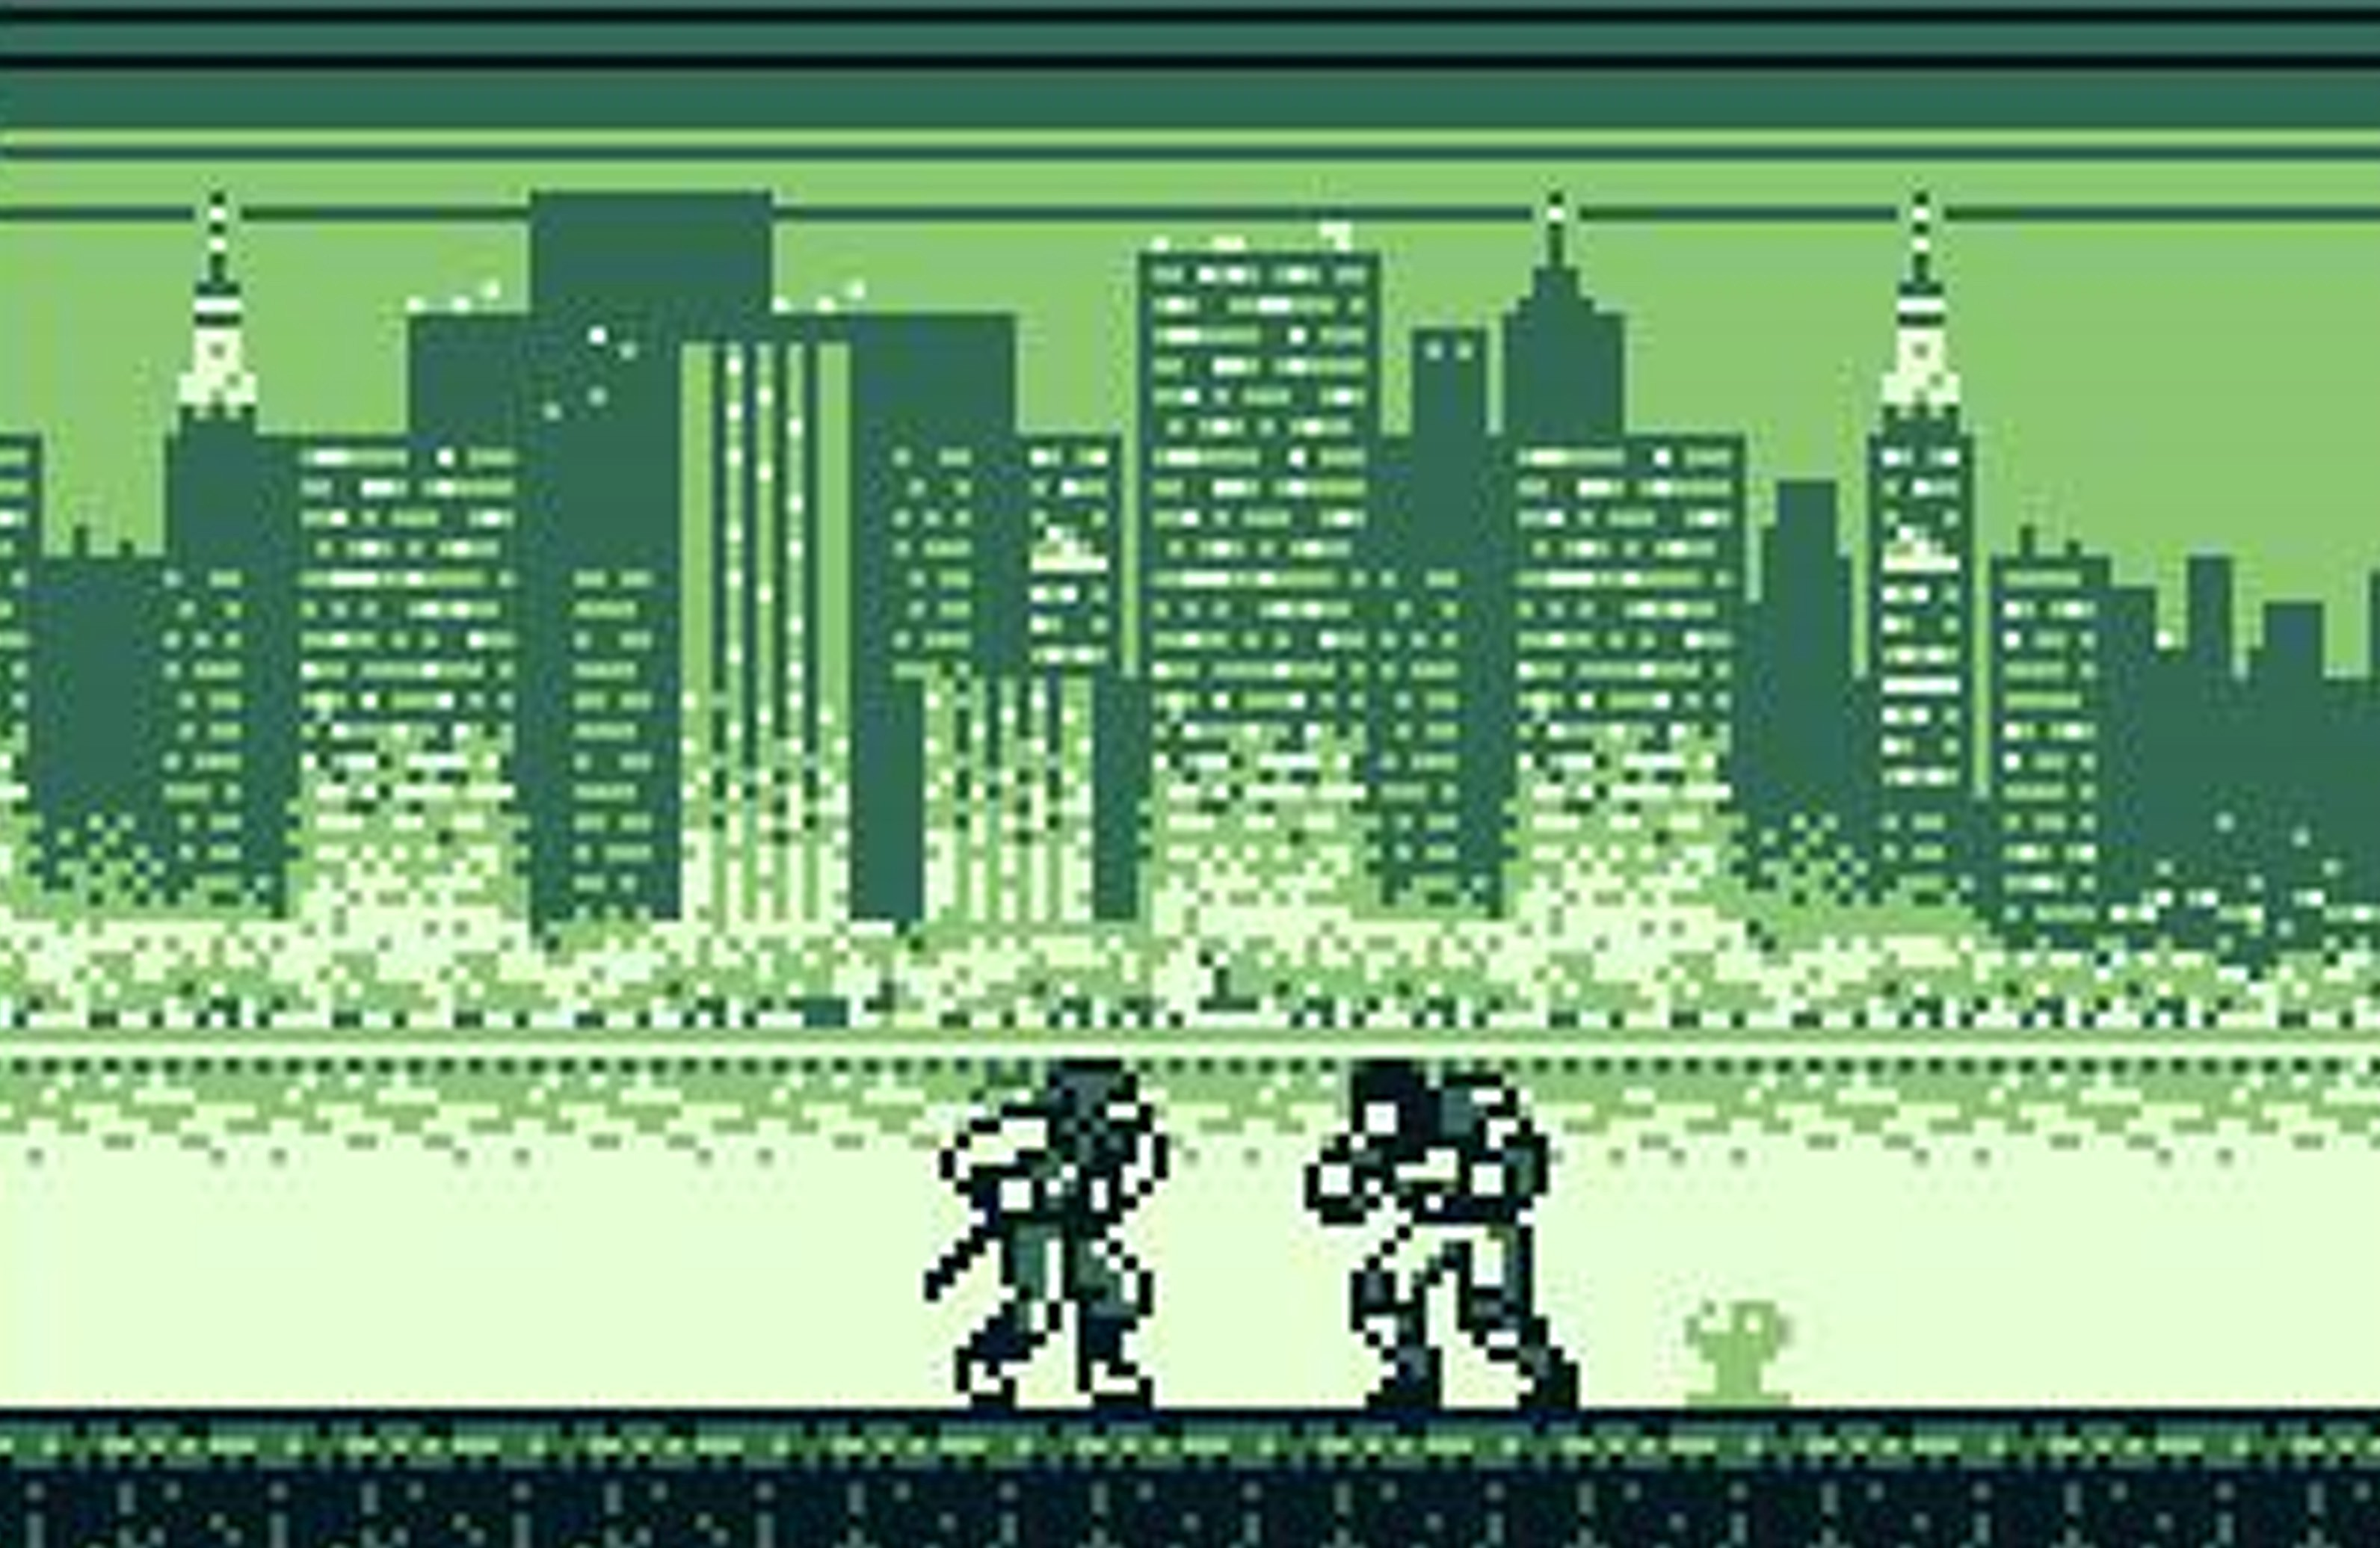 screenshot of the videogame shadow warriors, running on gameboy